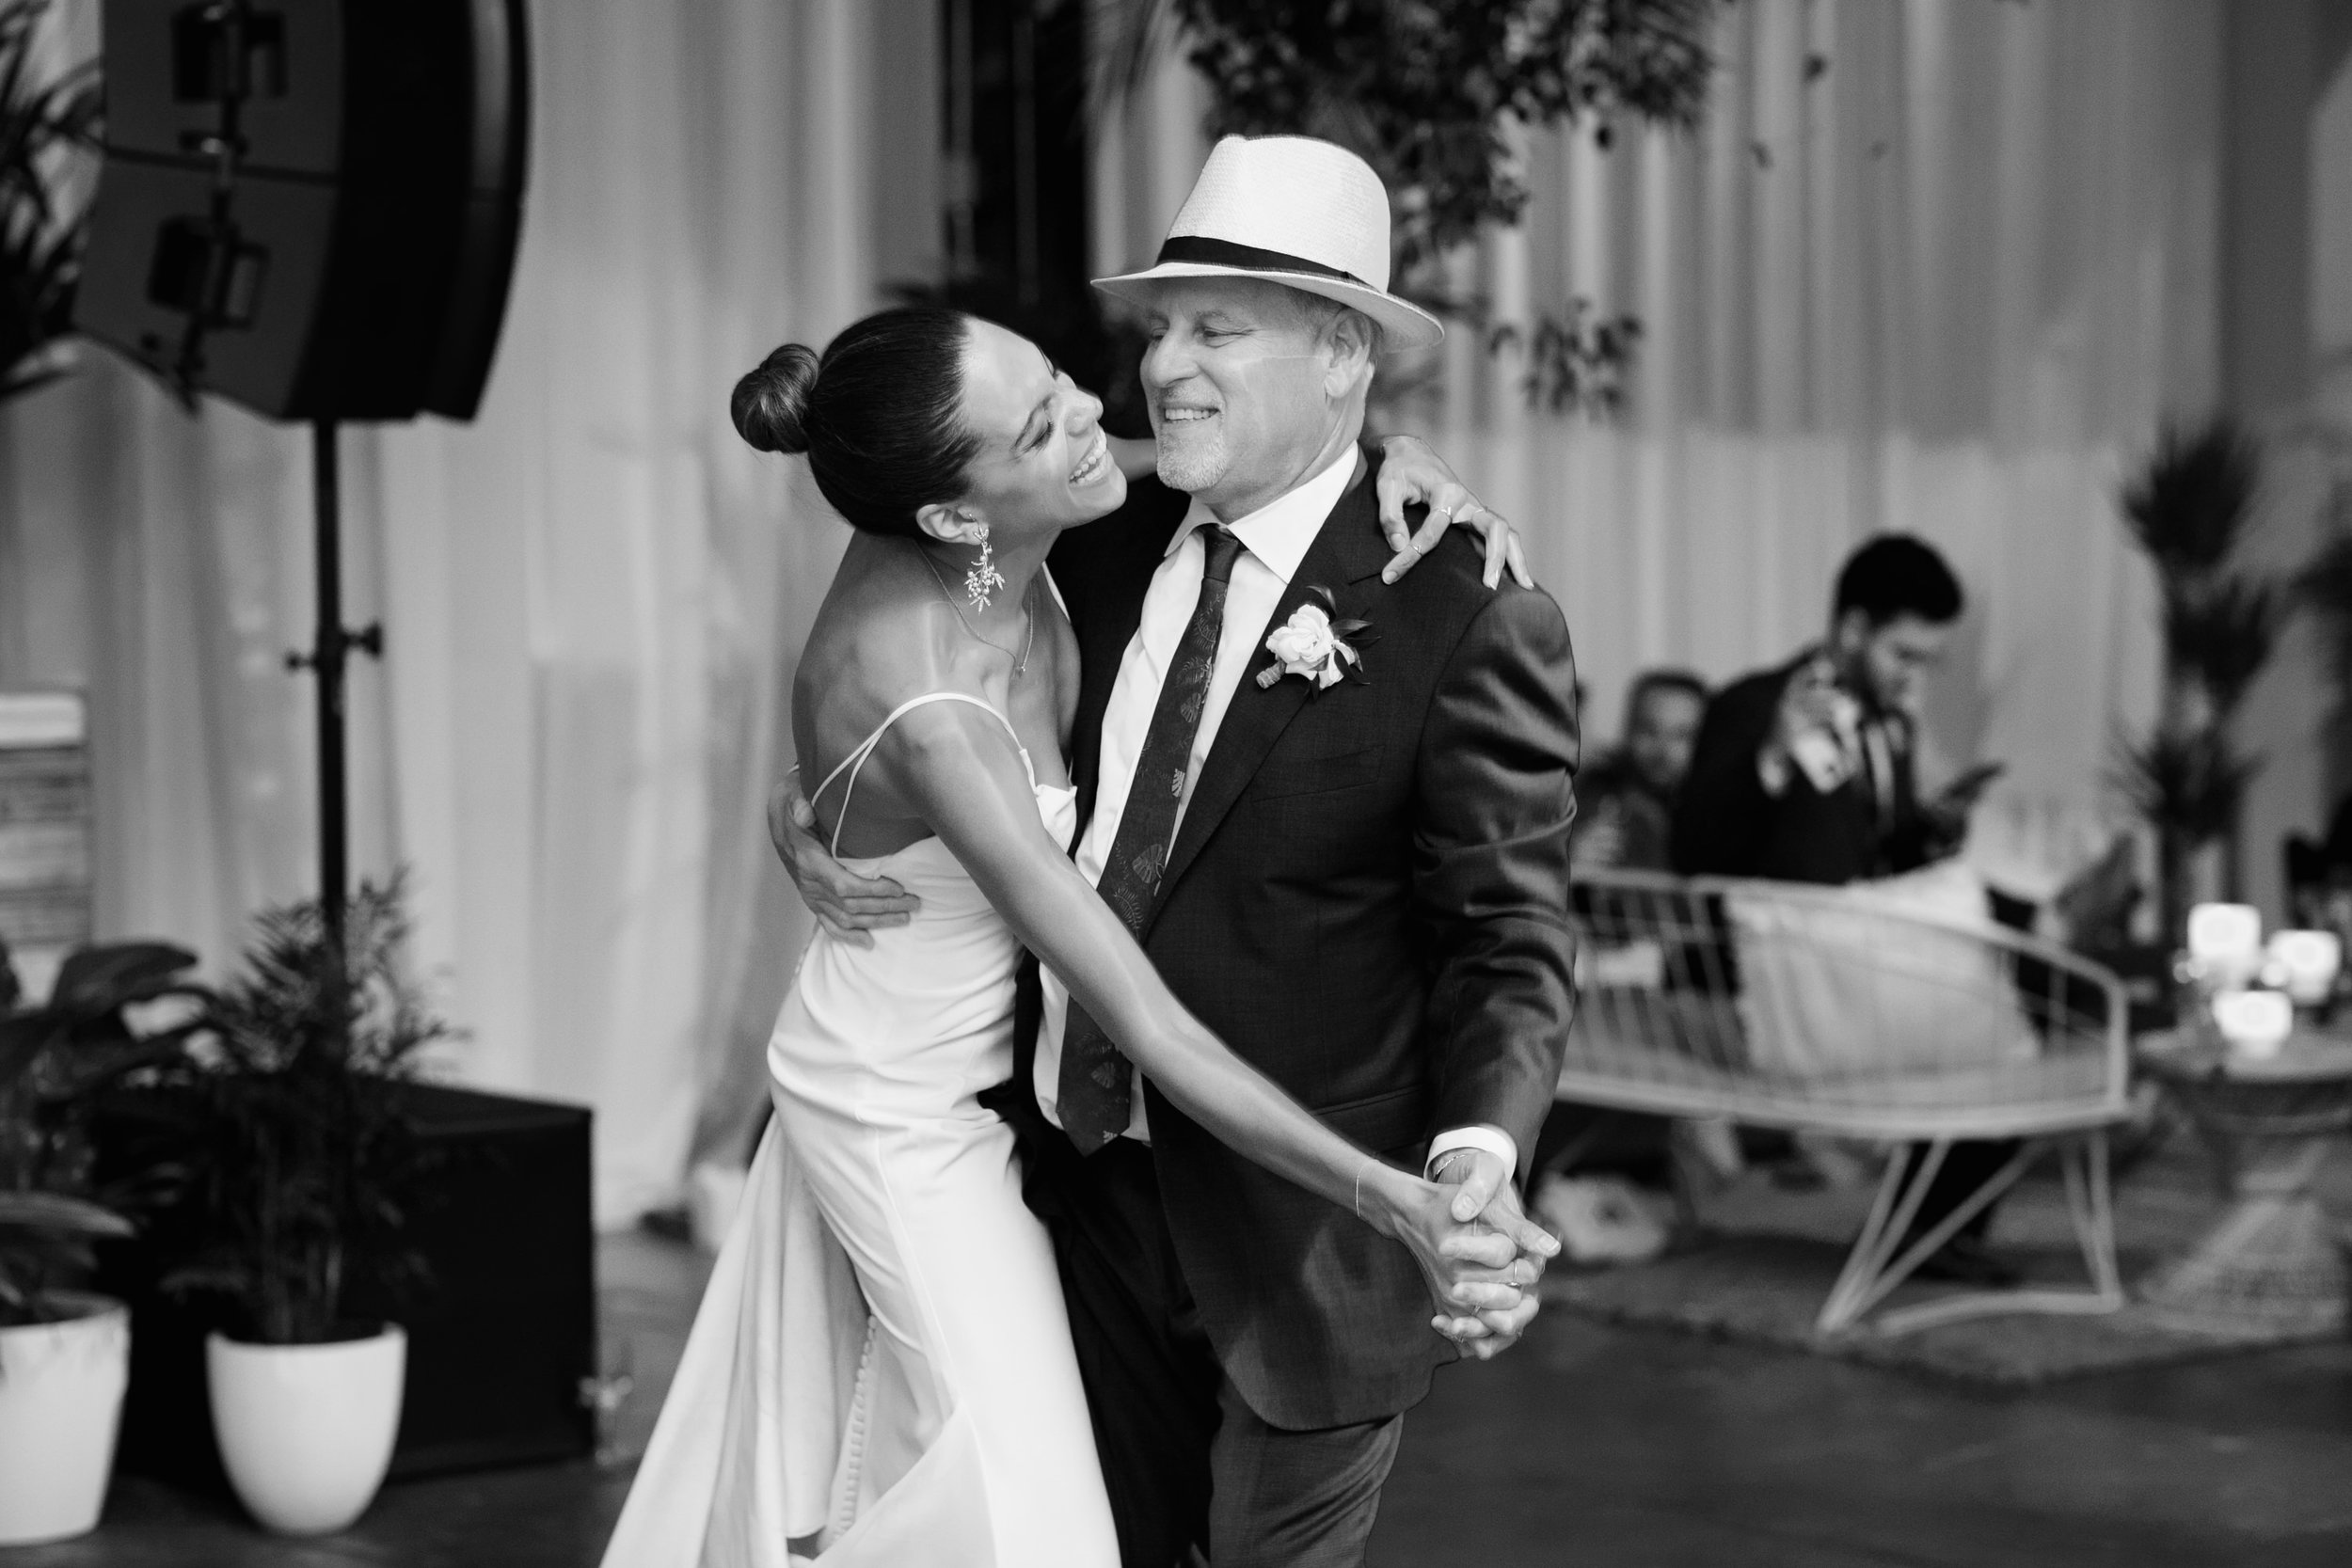 photography-wedding-weddings-natural-candid-dock 5 dc-washington dc-philadelphia-mixed race-editorial-modern-fine-art-078.JPG